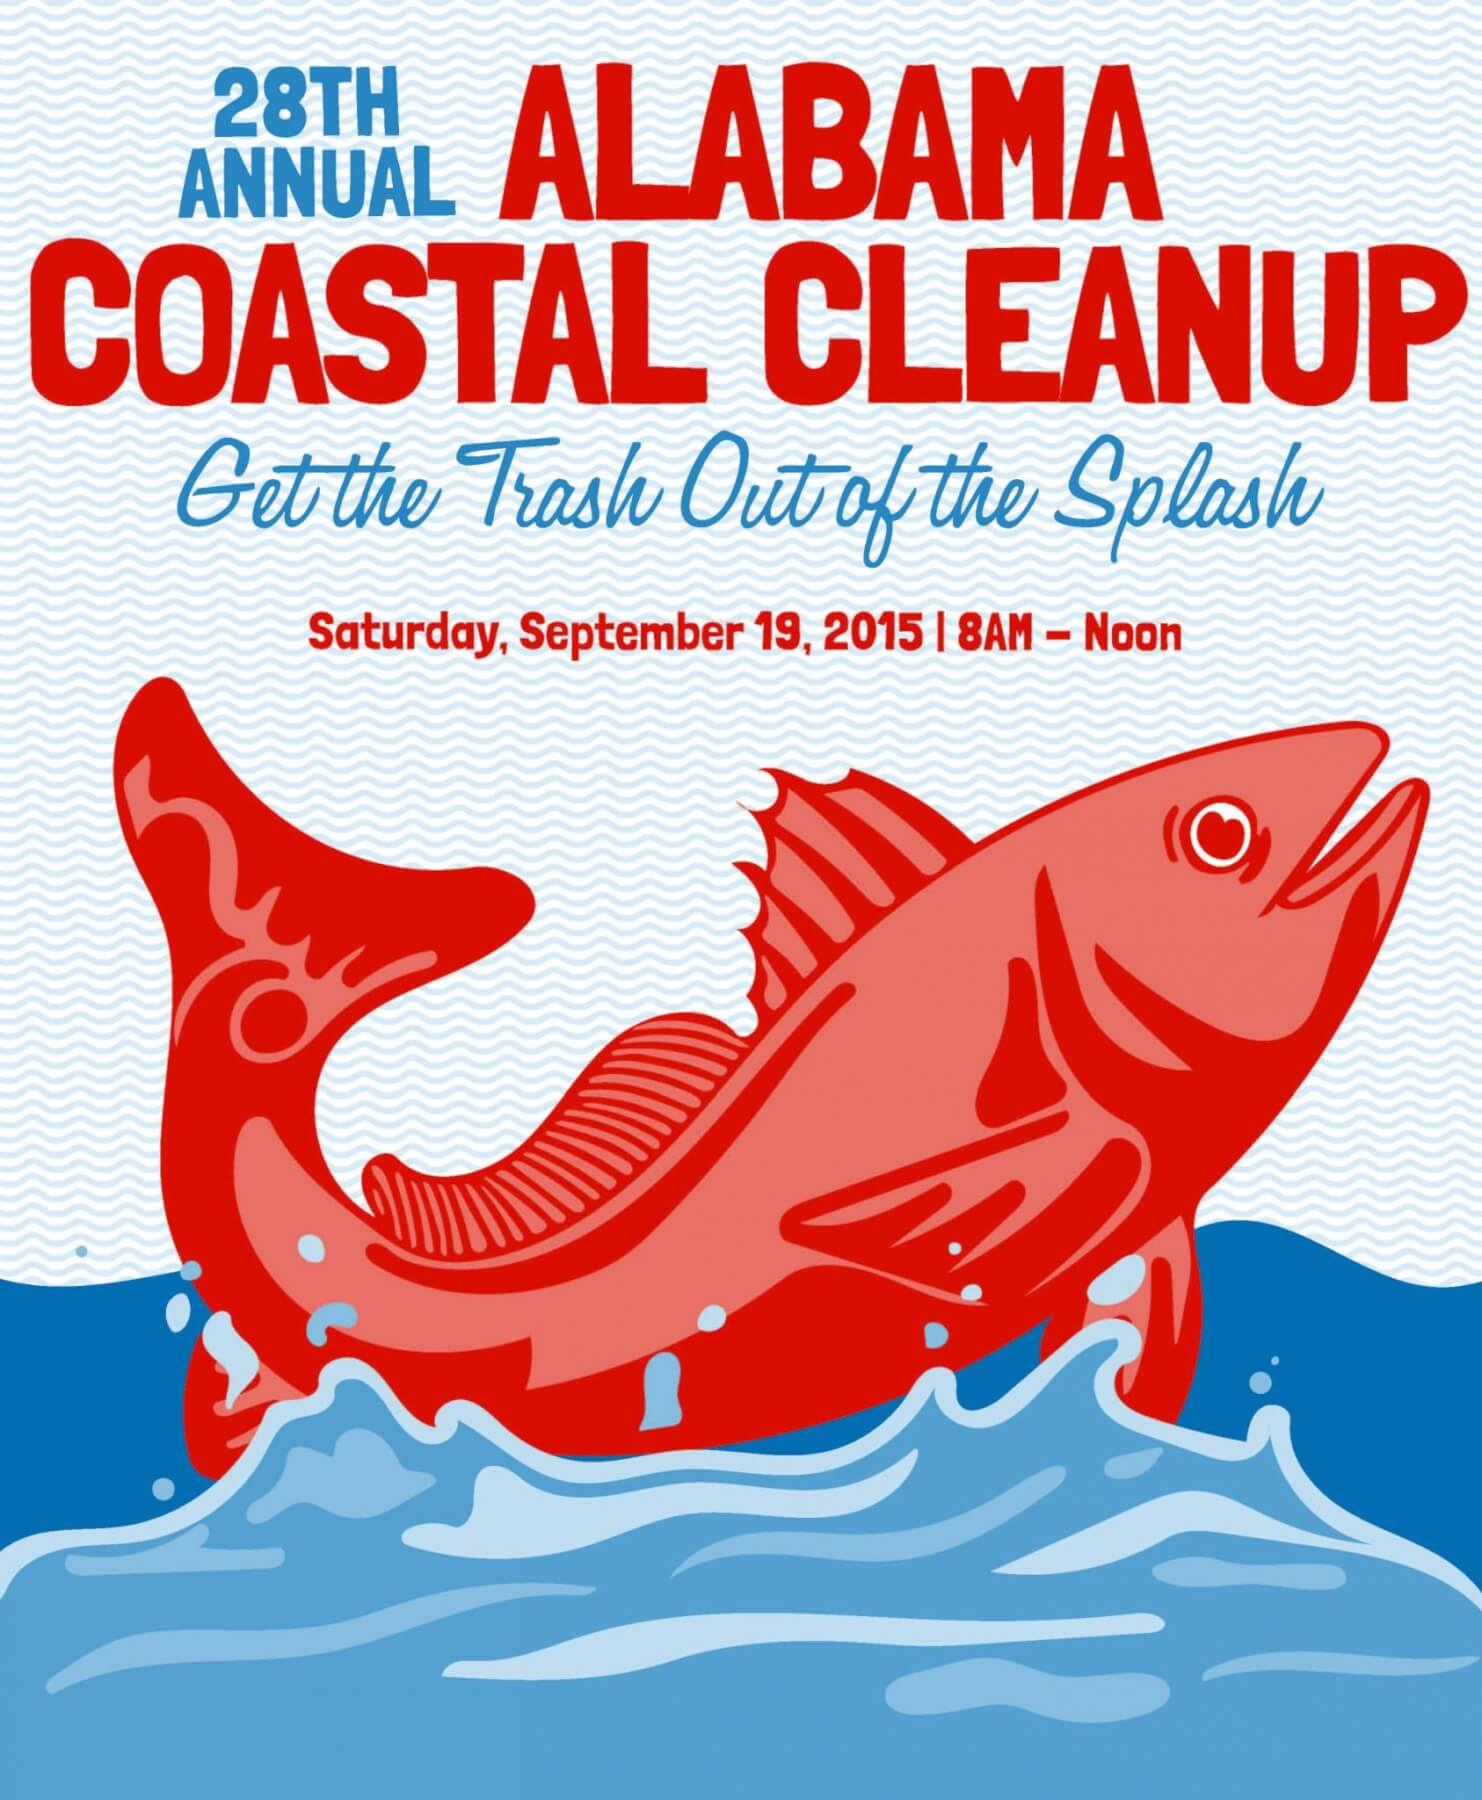 Coastal Cleanup returns to Fairhope Sept. 19